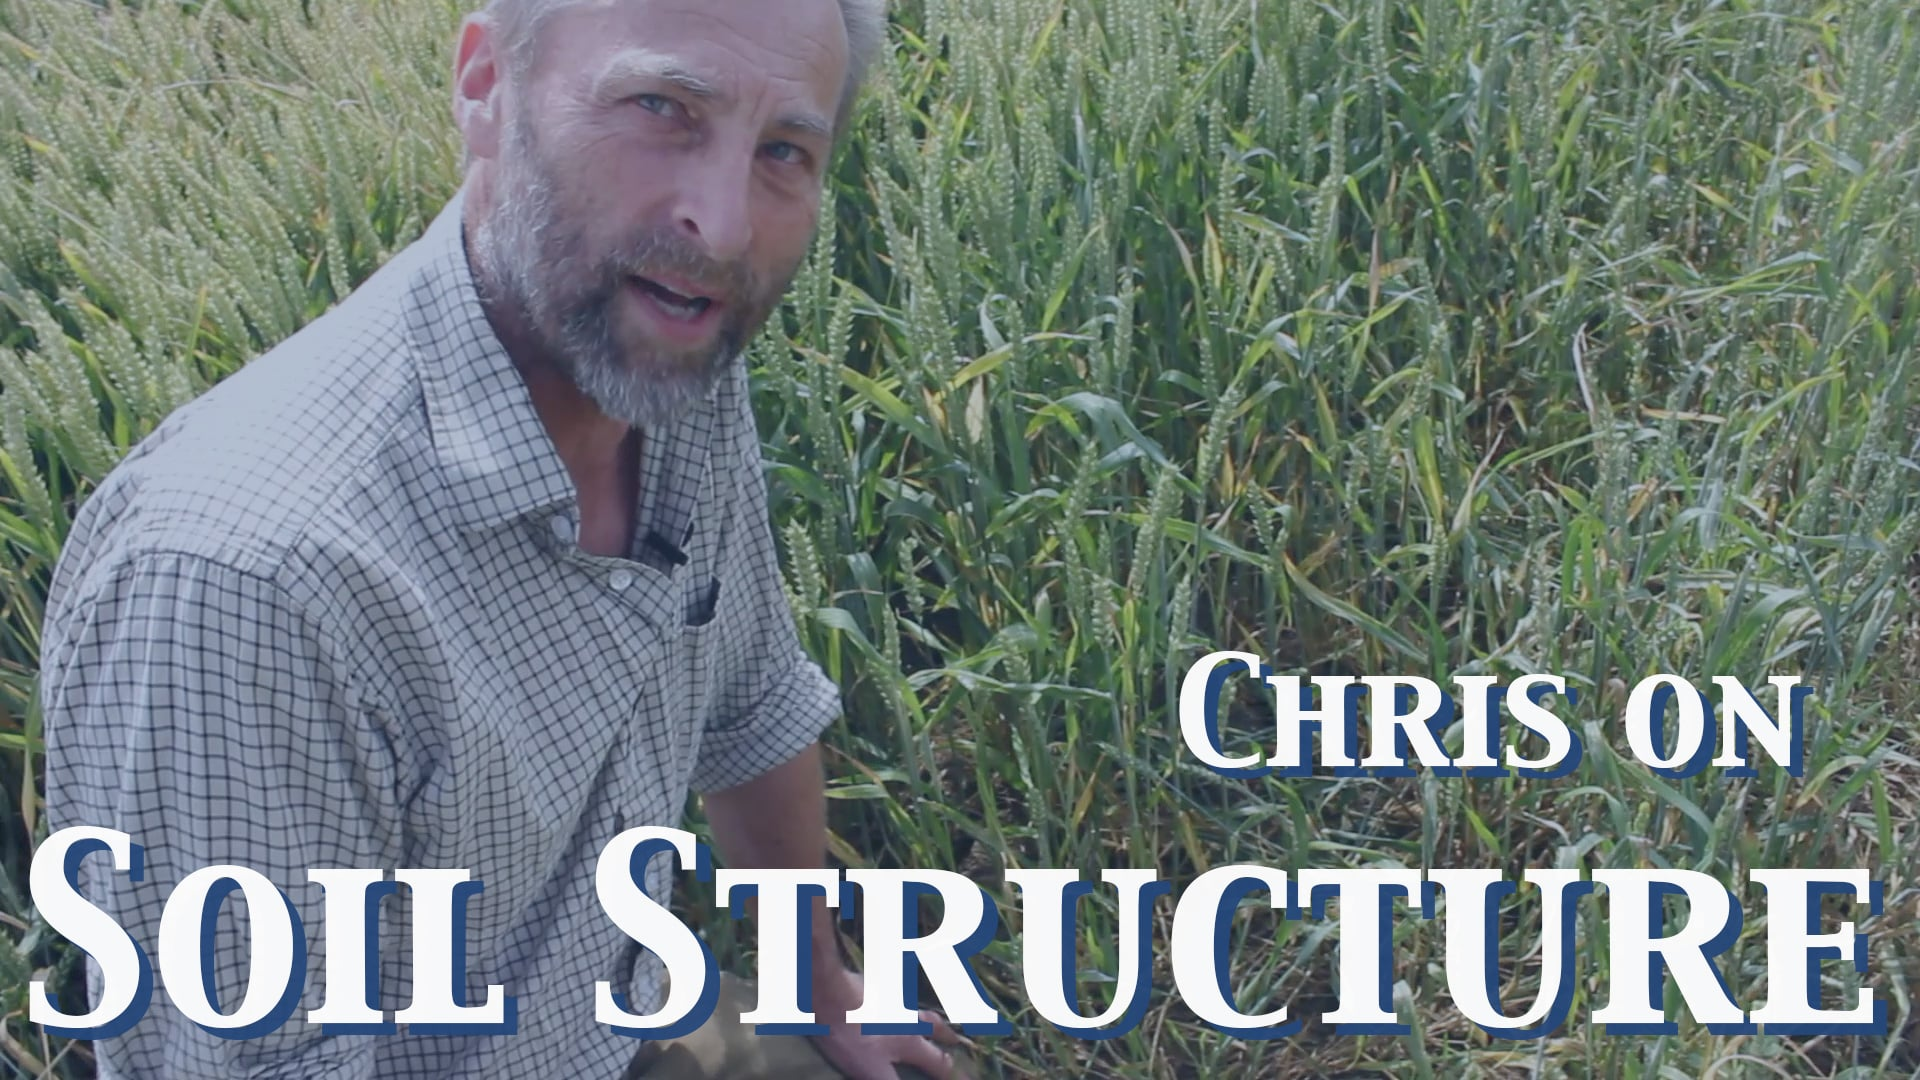 Chris on Soil Structure